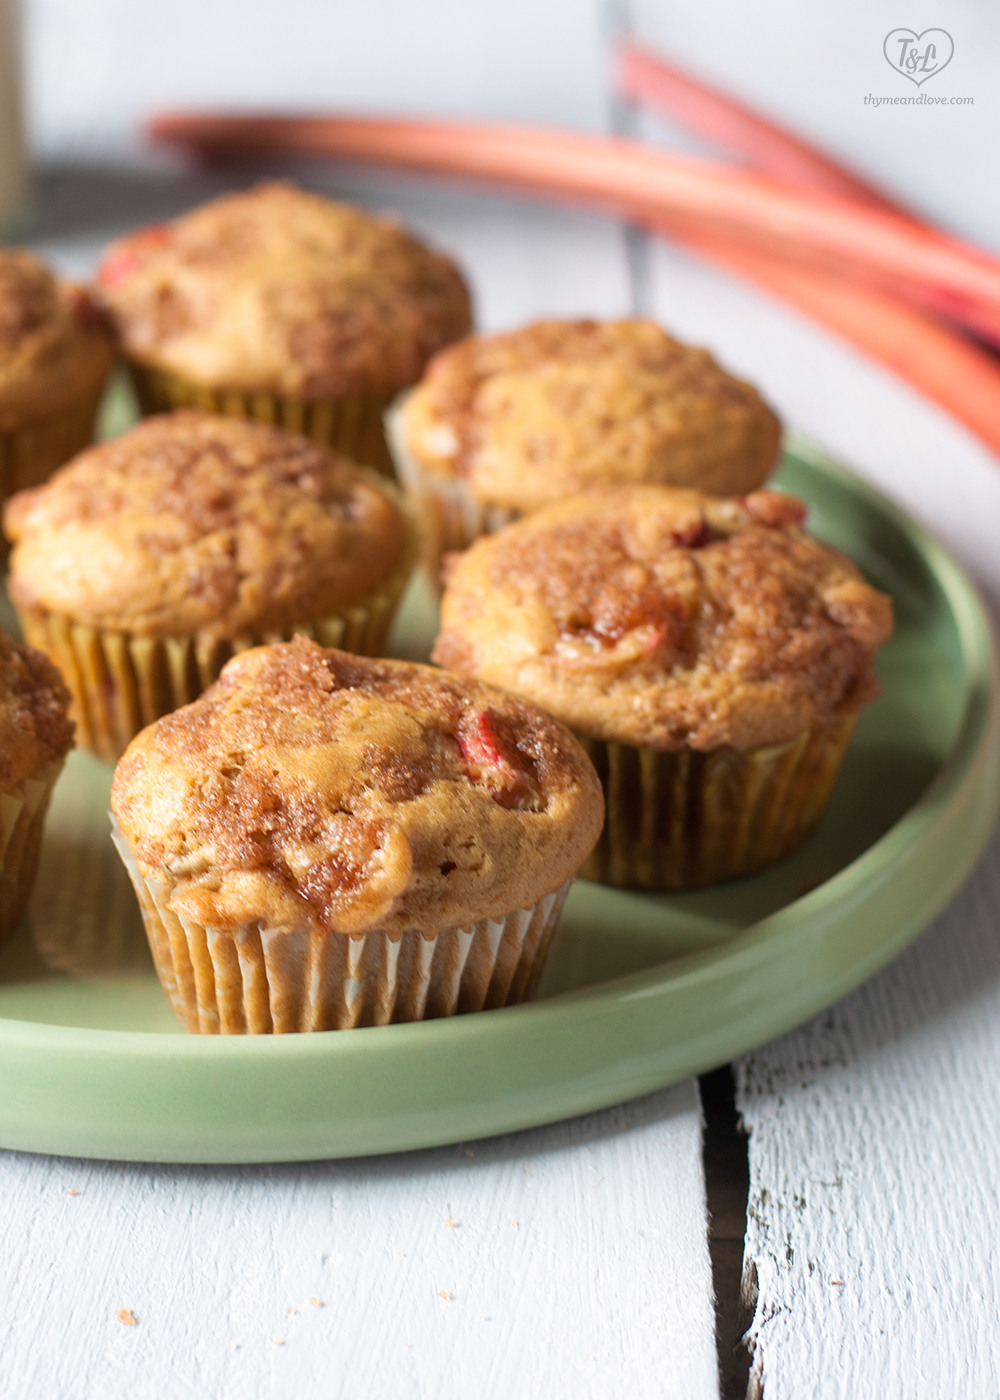 Vegan Rhubarb Muffins with a cinnamon sugar topping